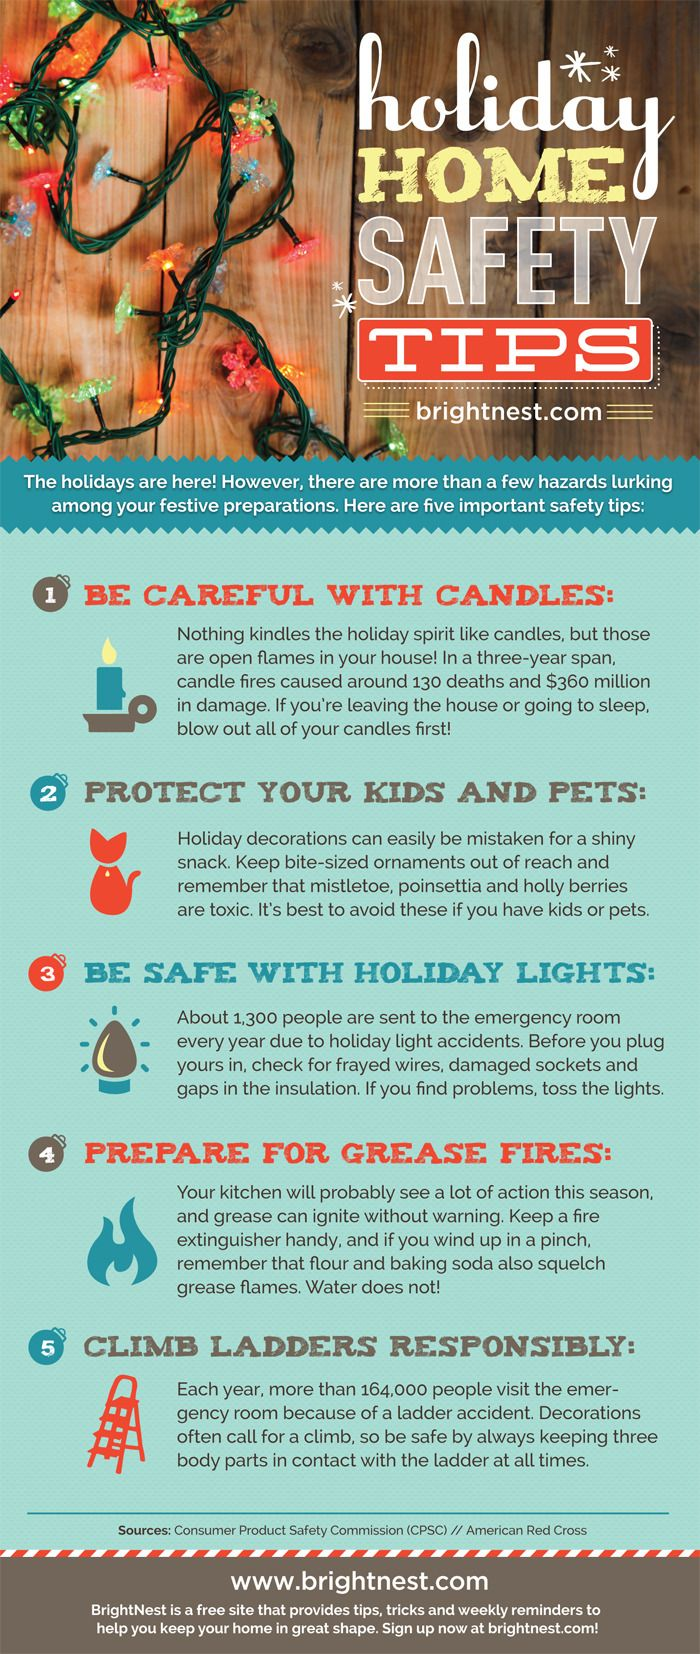 Brightnest Holiday Home Safety Tips Holidays Infographic